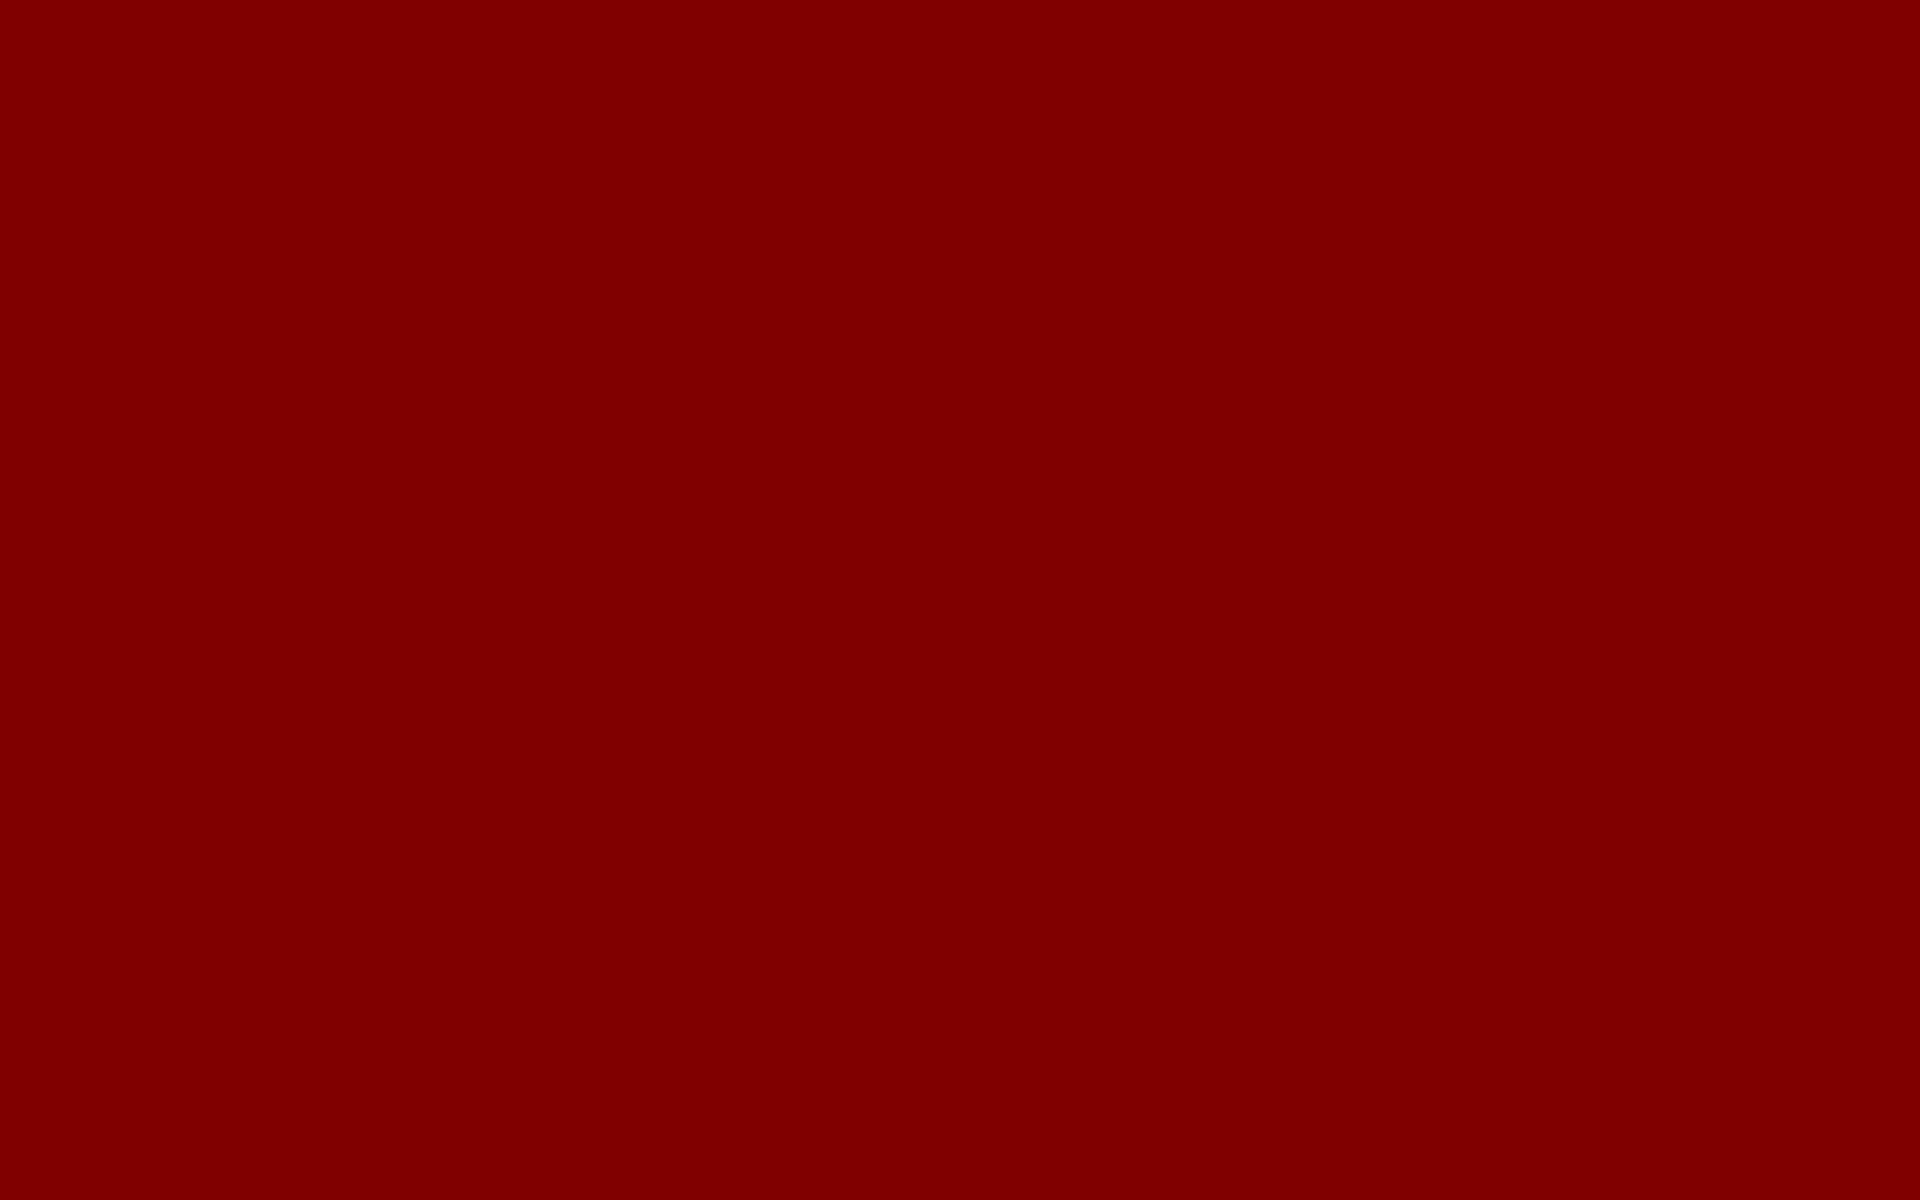 1920x1200 Maroon Web Solid Color Background